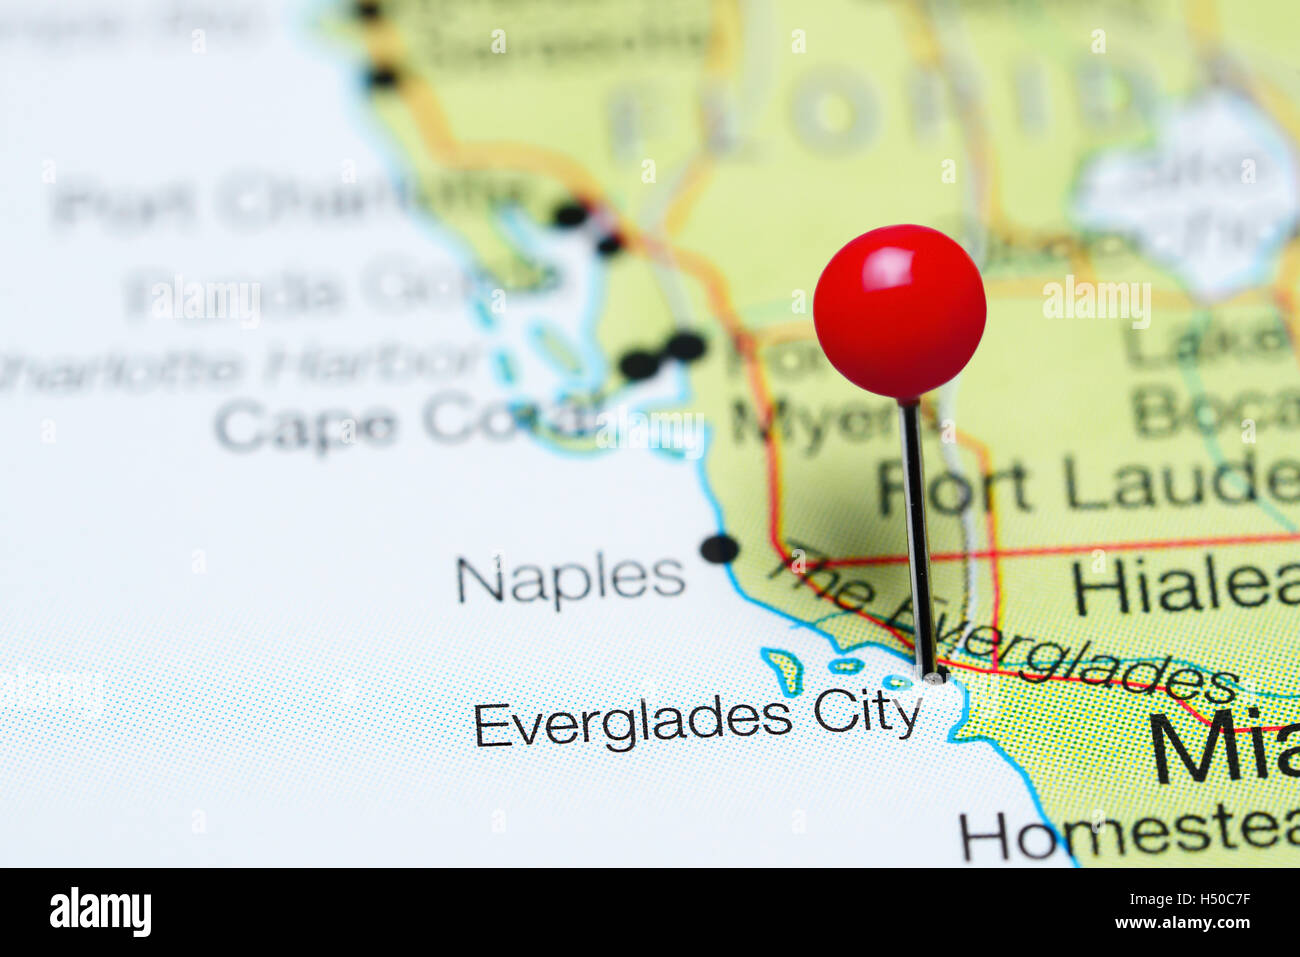 Everglades City pinned on a map of Florida USA Stock Photo